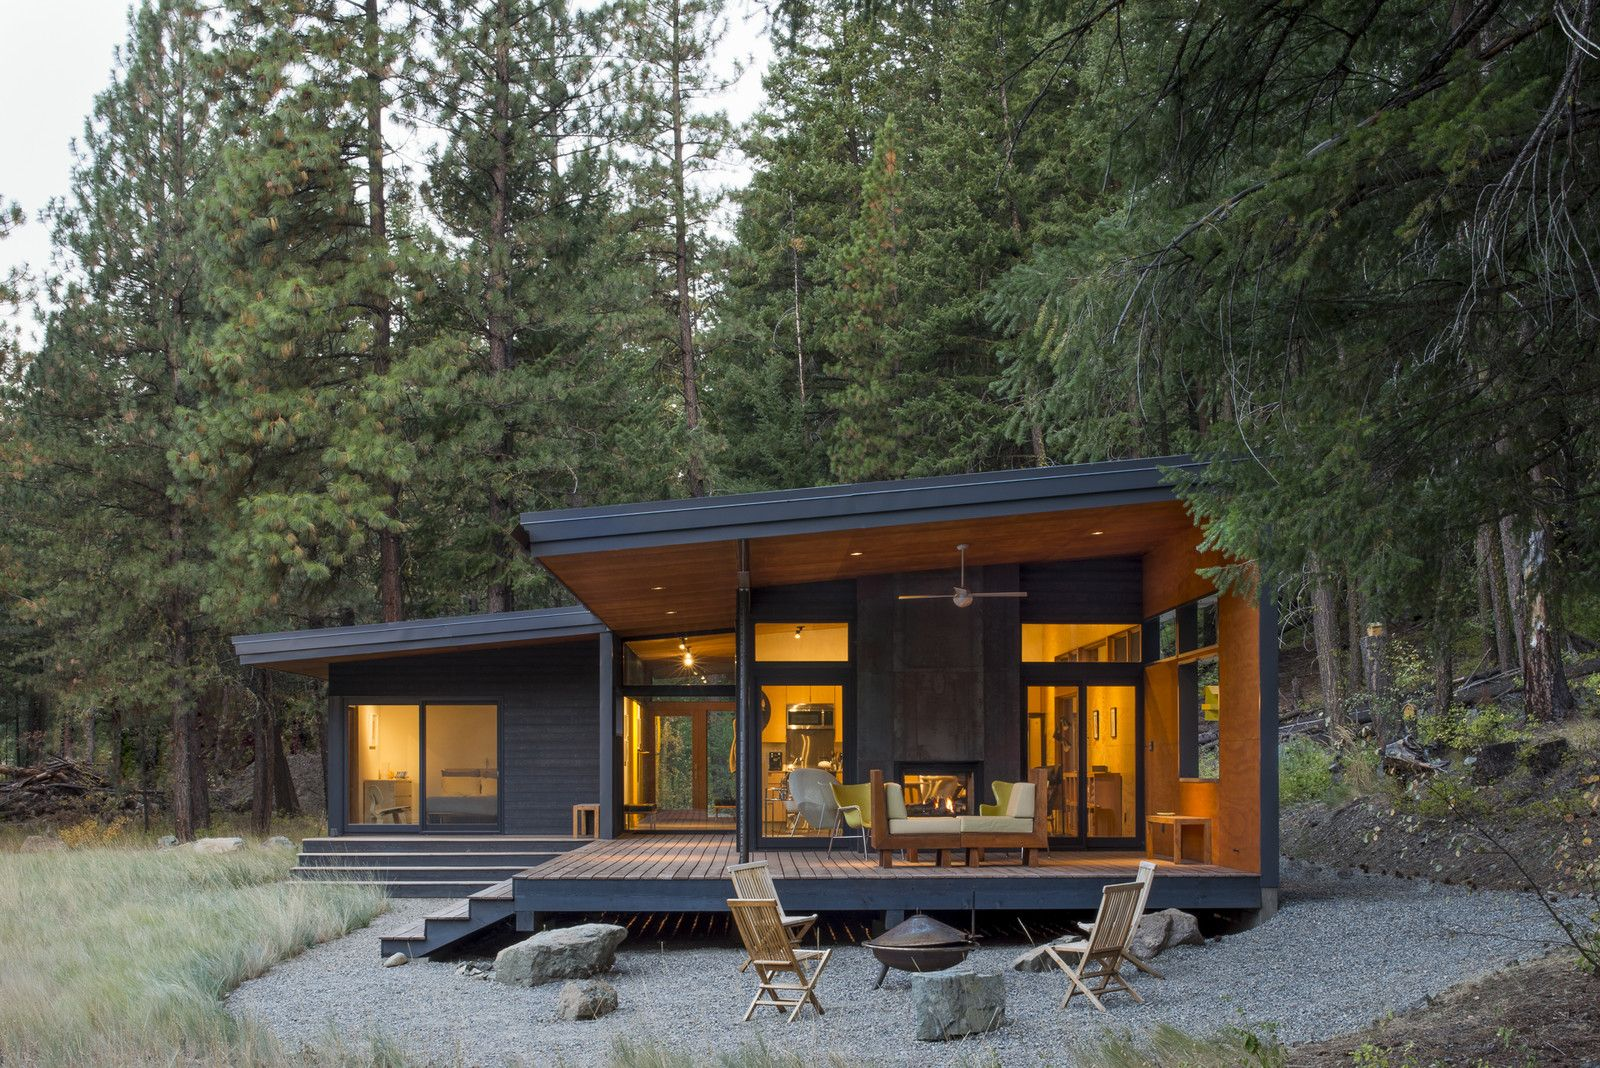 The chechaquo lot 6 cabin sits in a small meadow ringed by ponderosa pines backed